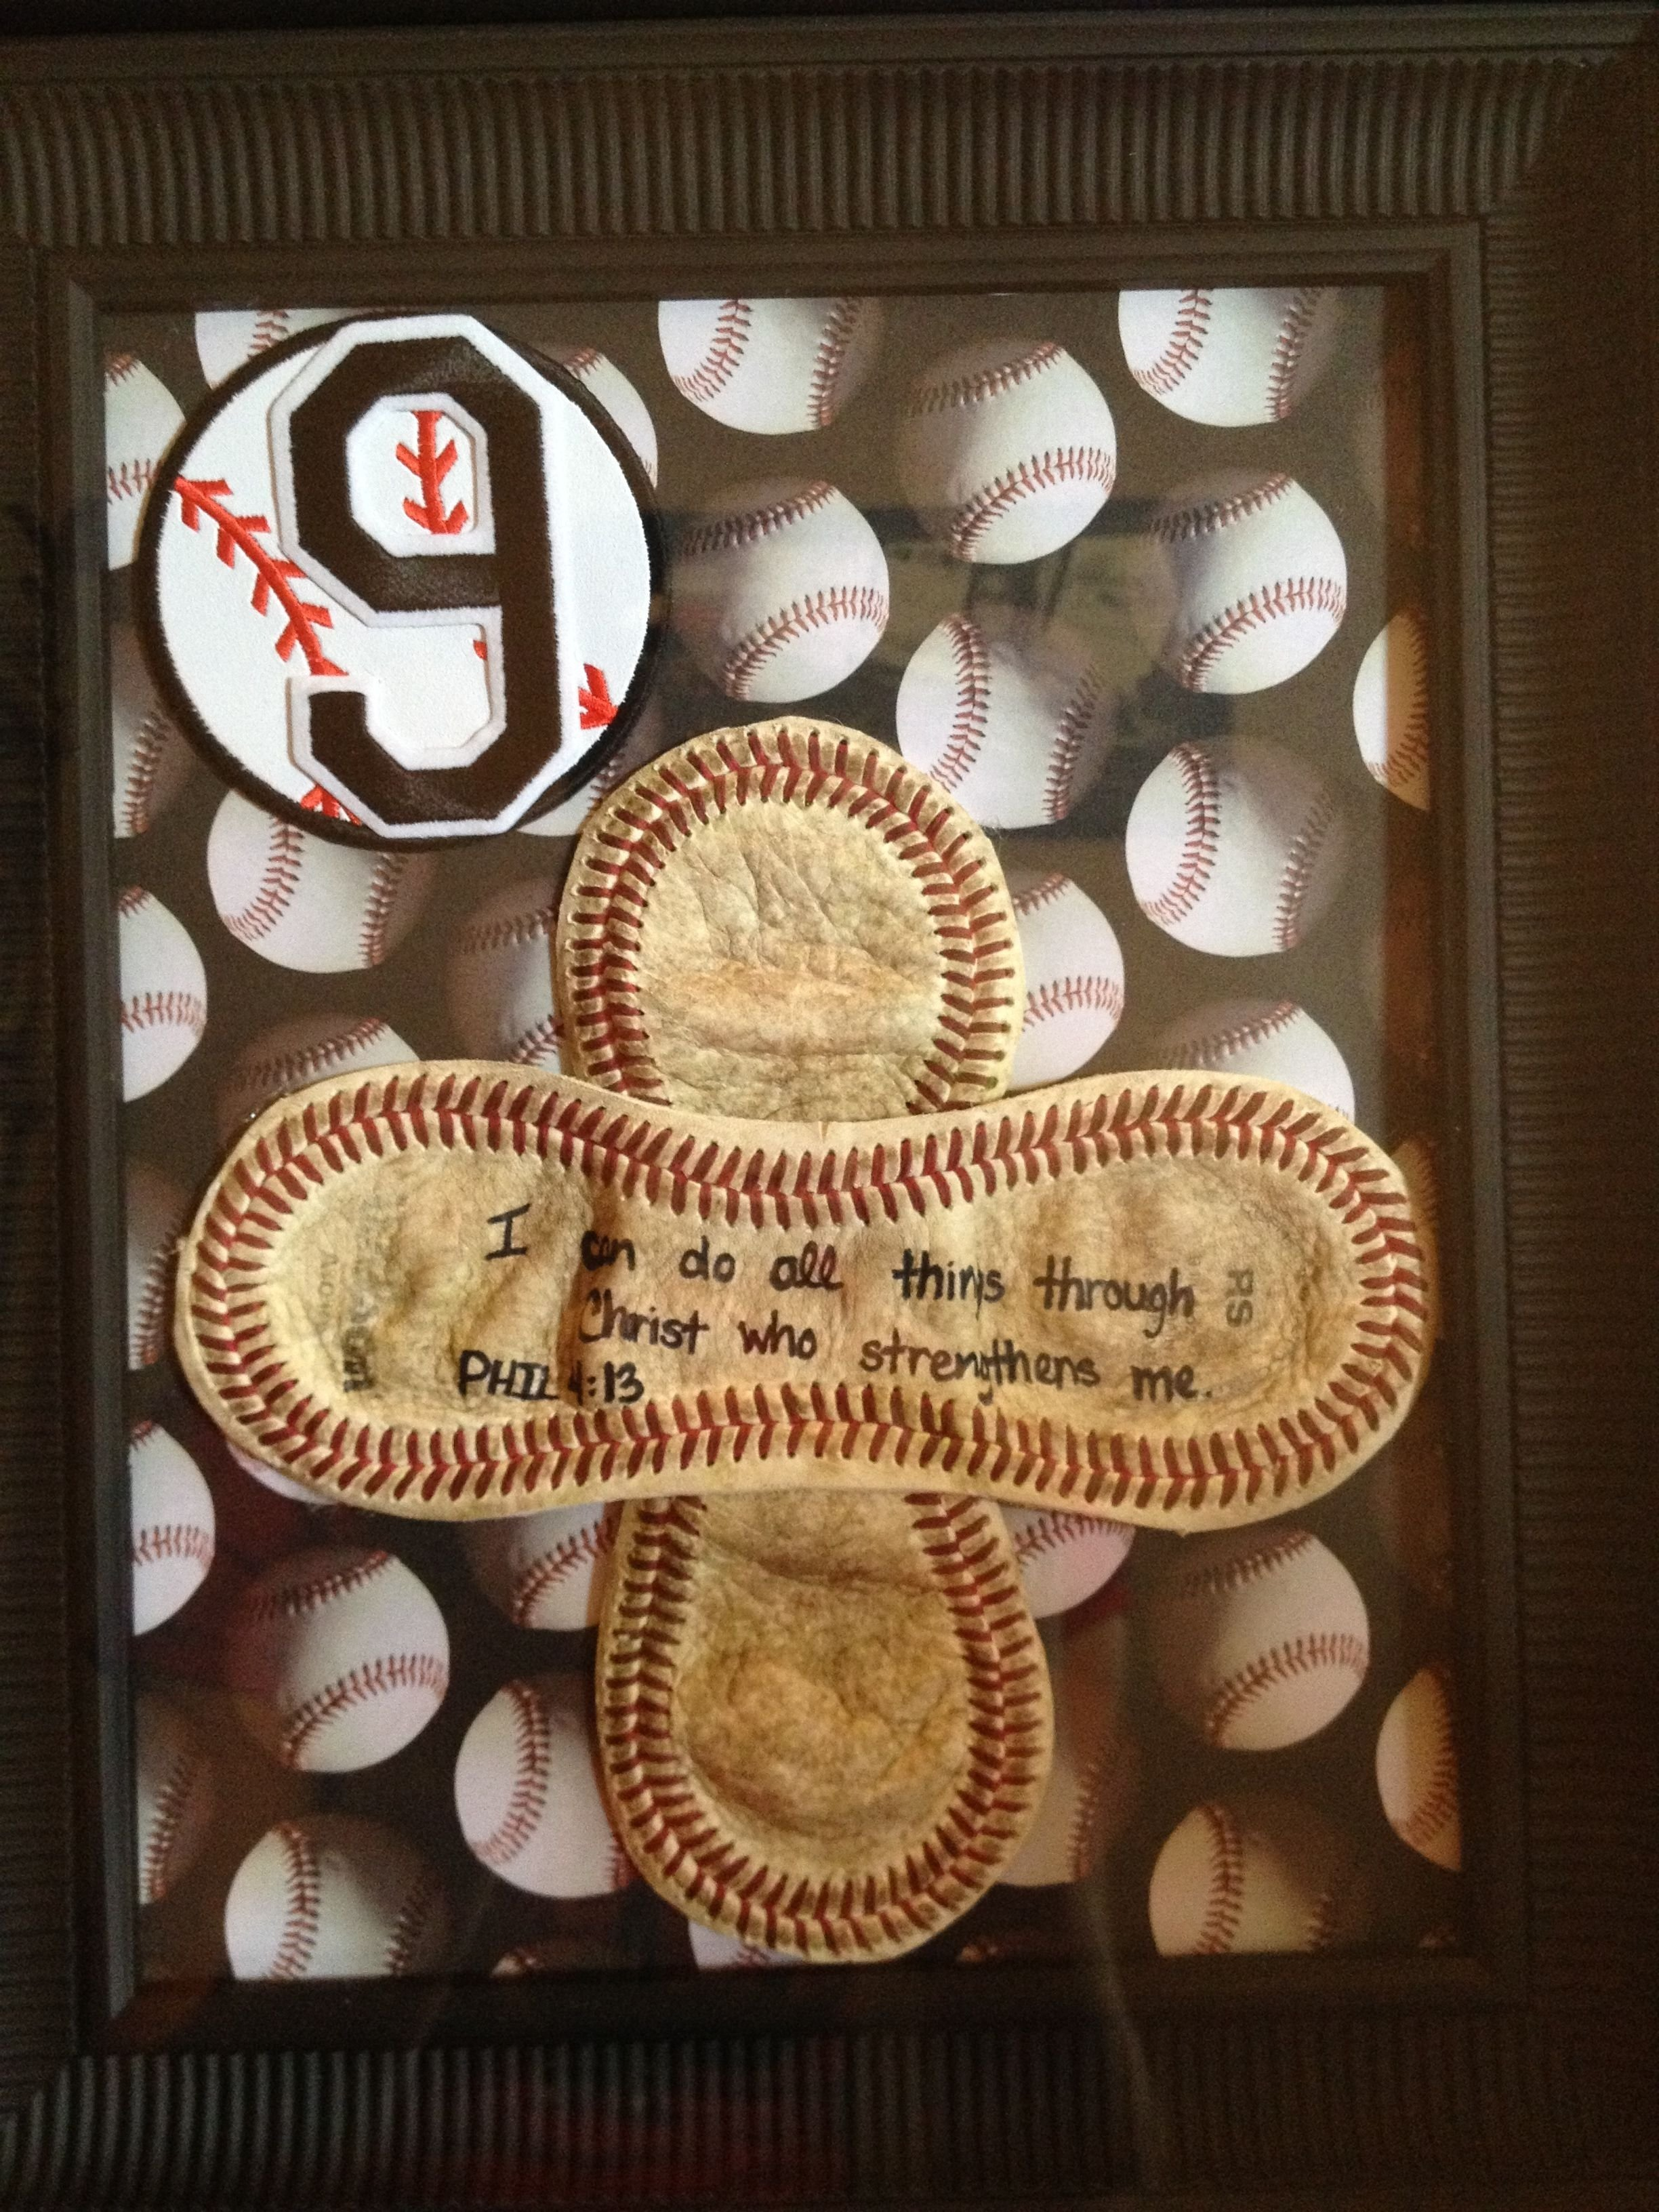 10 Great Cute Boyfriend Christmas Gift Ideas do with a softball and jersey in the background to remember teams 1